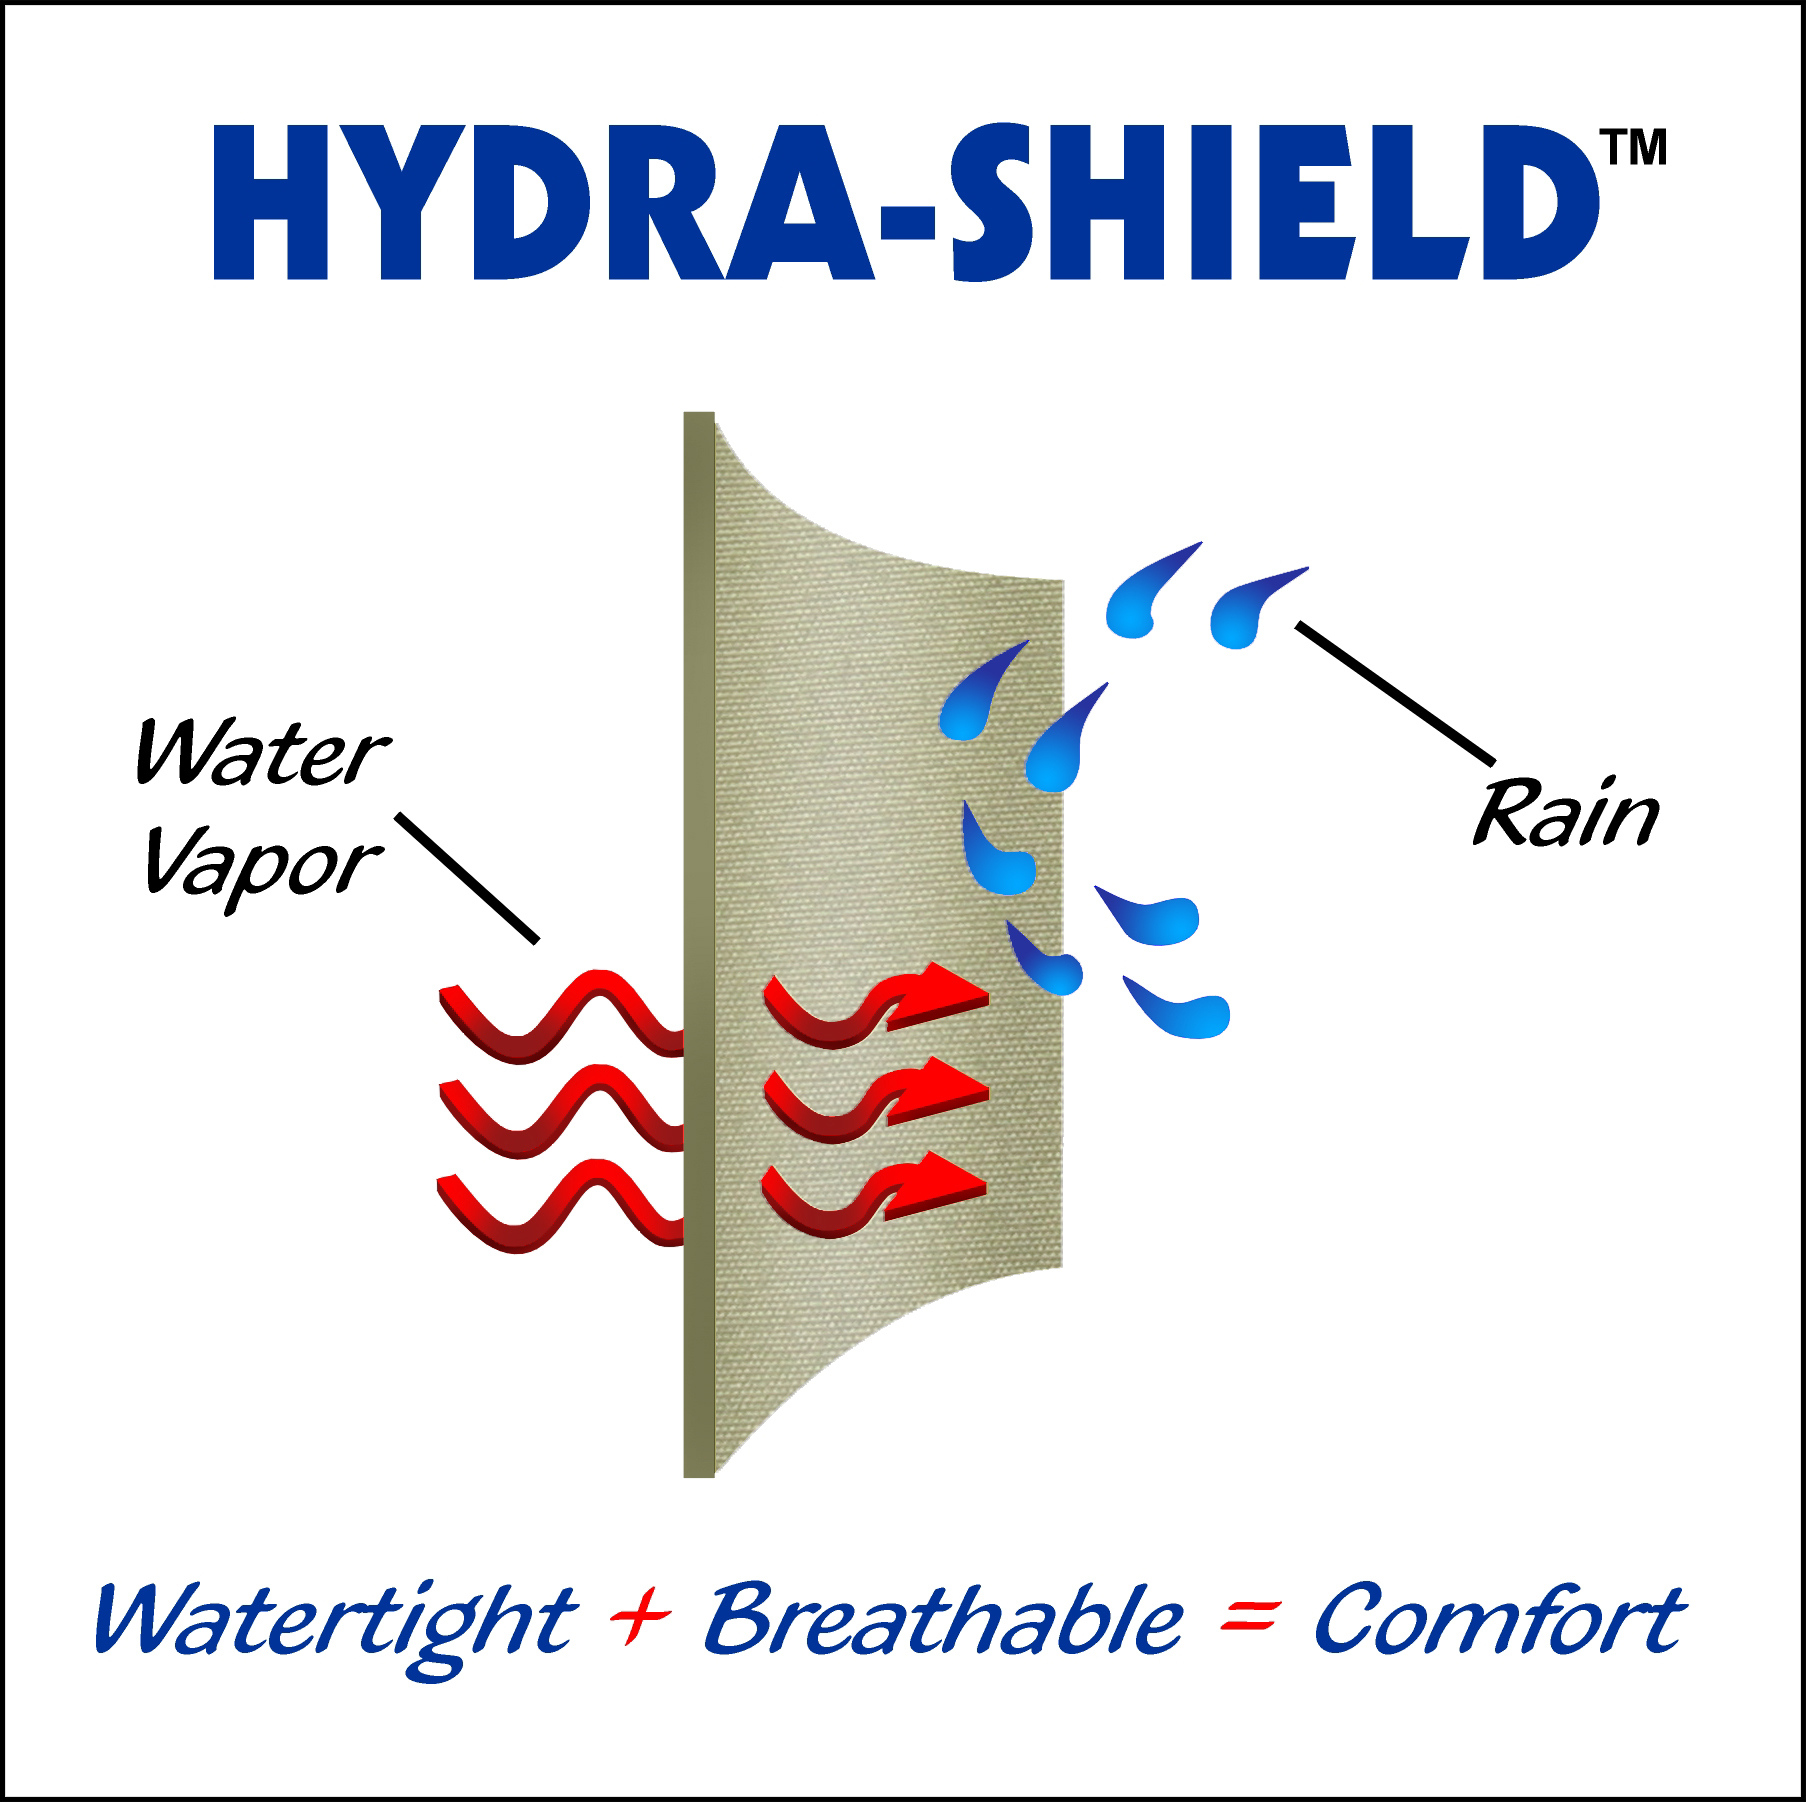 hydra-shield-diagram.jpg